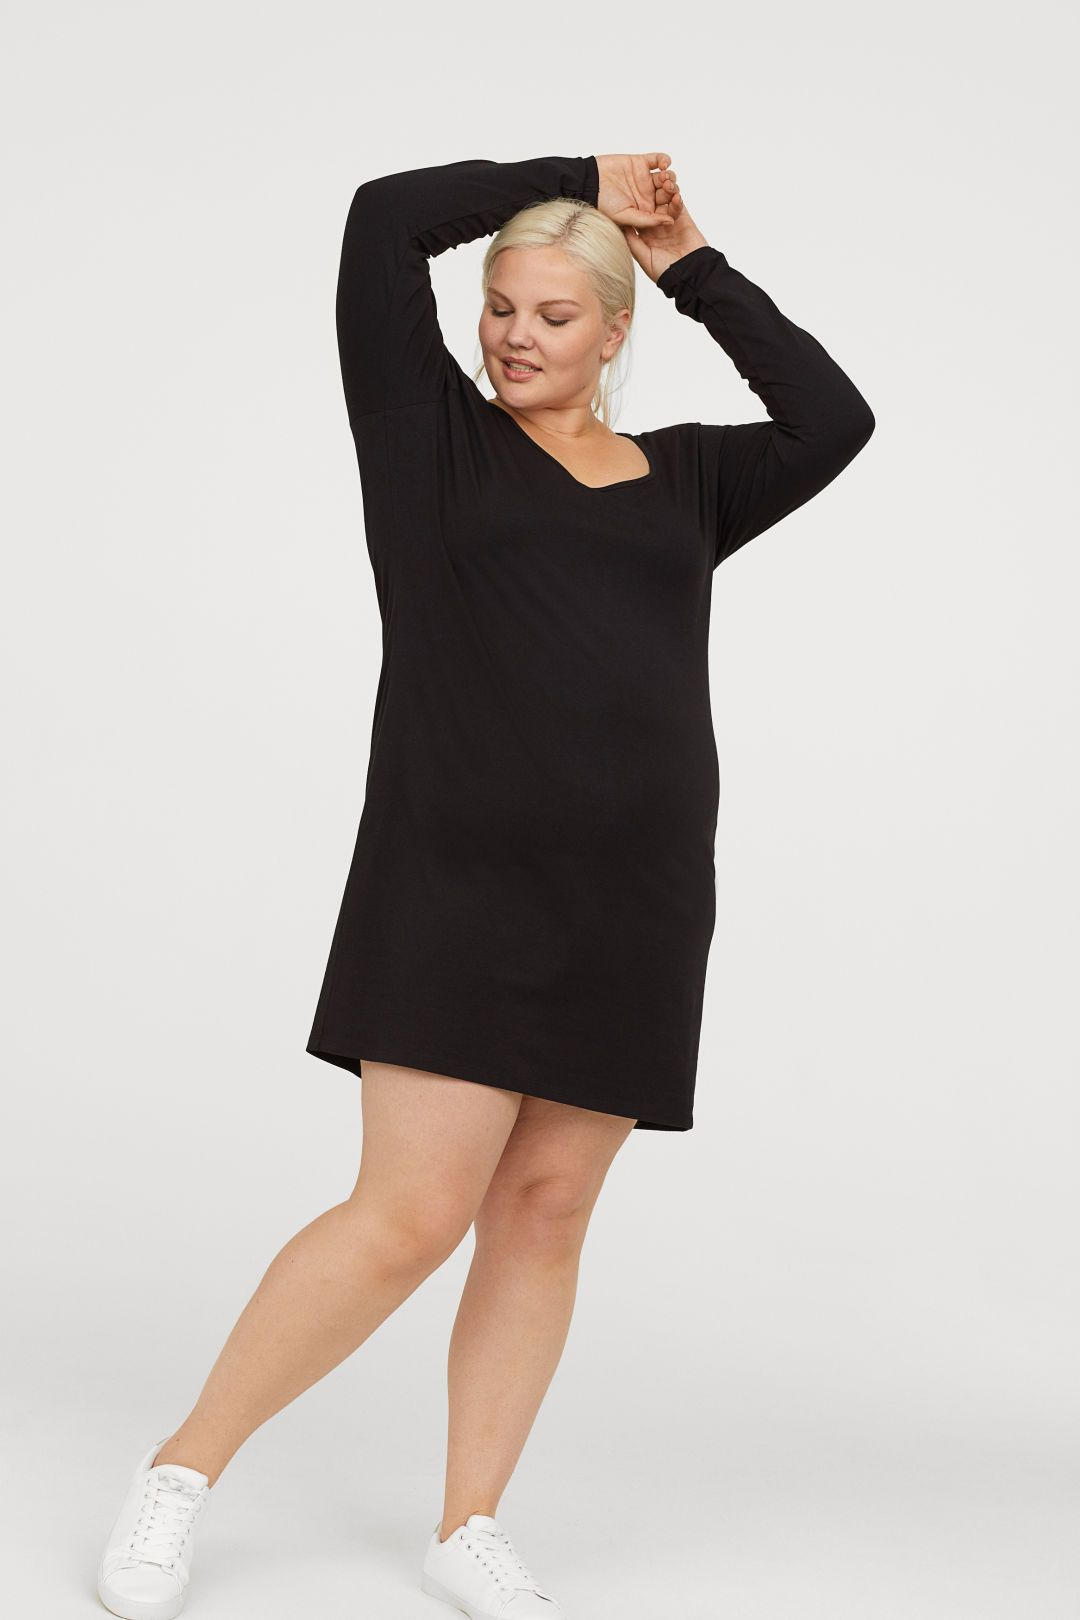 61f3fe8a103 Jersey Tunic in 2019 | My Edgy Curvy Closet | Tunic, Dresses, High ...